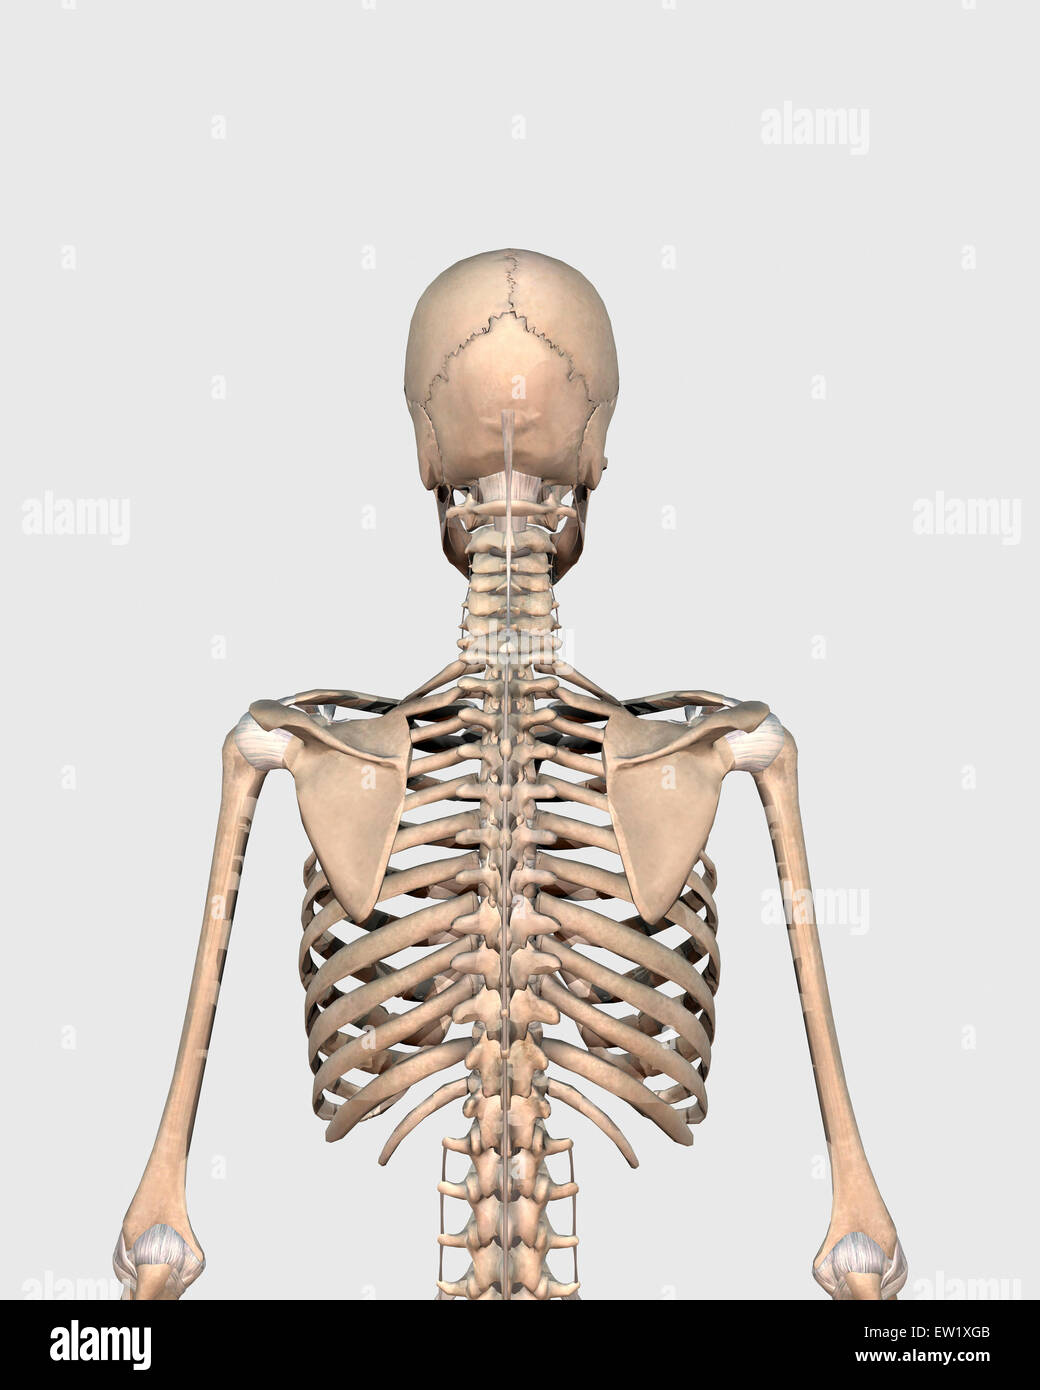 Cage Skeletal Skeleton Spinal Stock Photos Cage Skeletal Skeleton